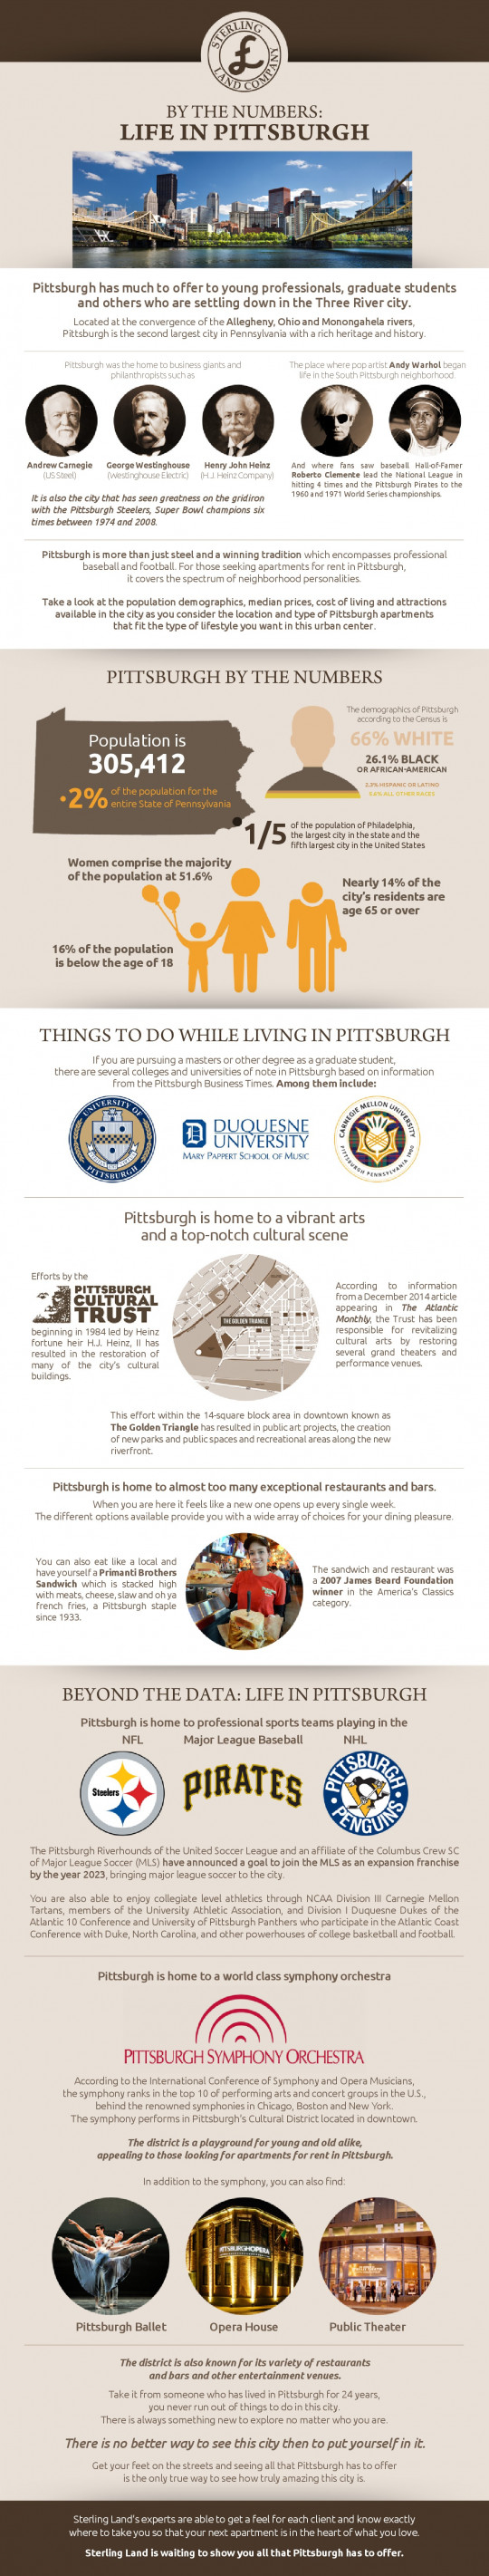 By The Numbers: Life In Pittsburgh